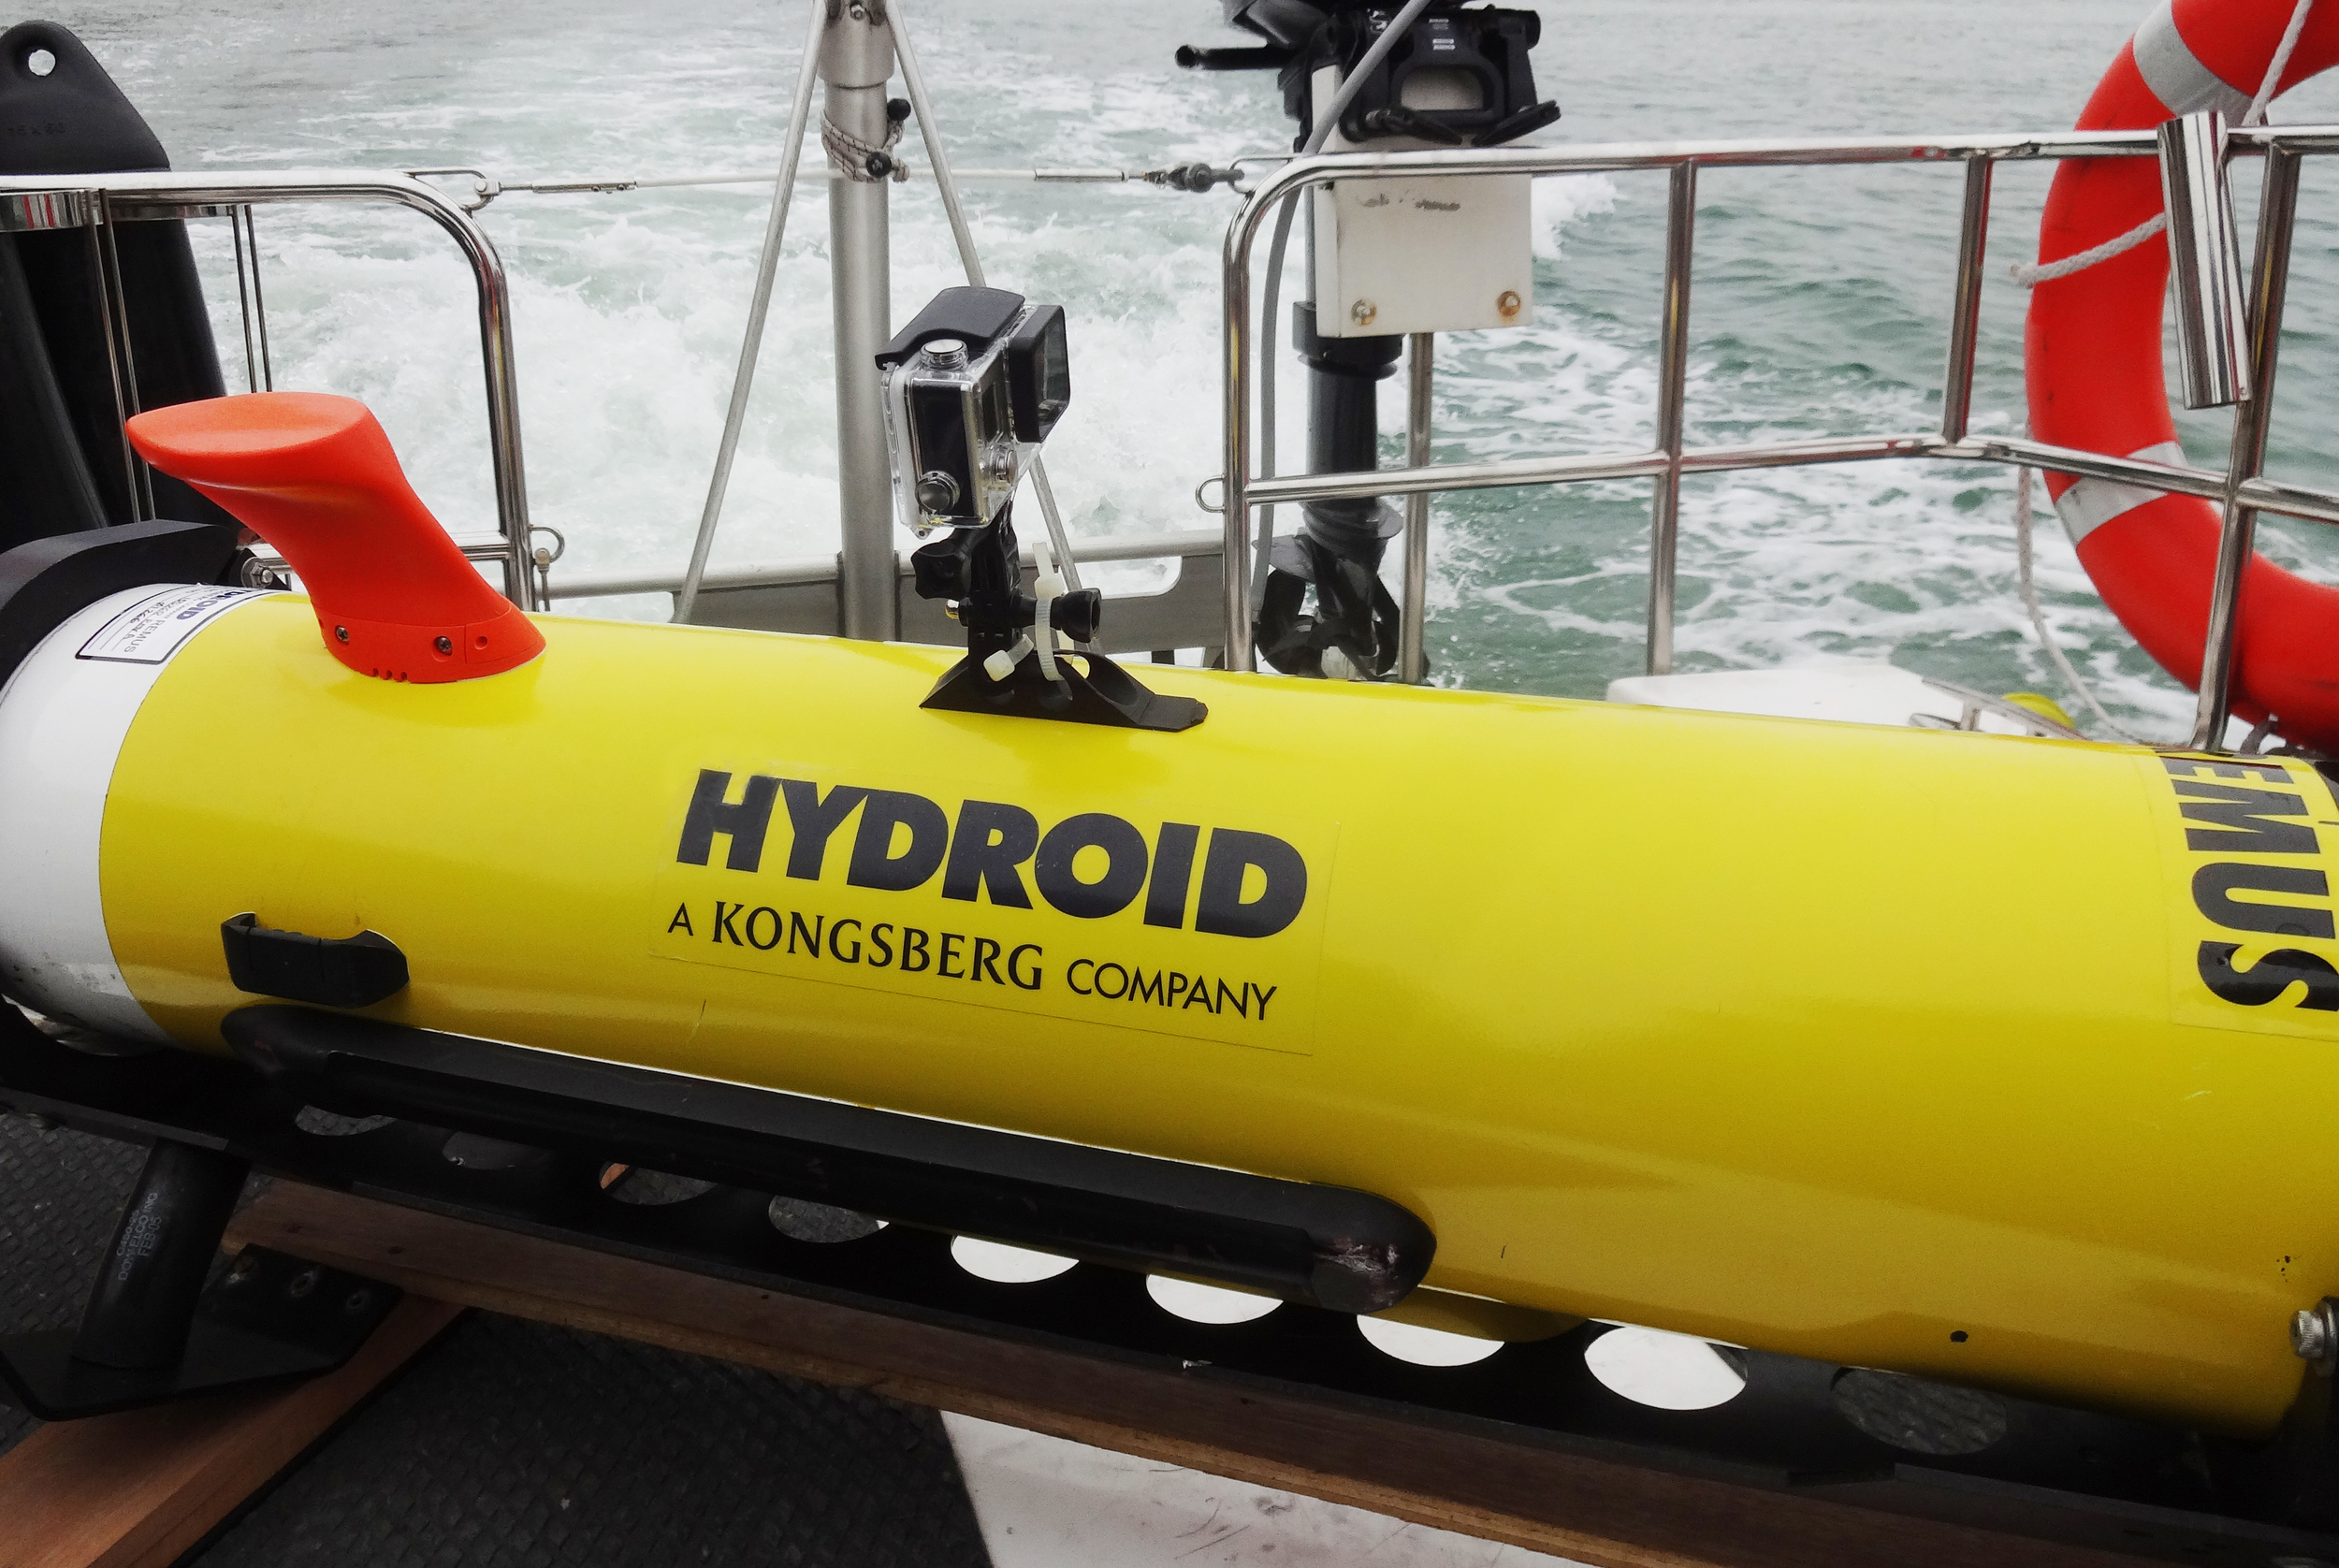 Photo: REMUS 100 AUV on deck before launching. Photo courtesy of Hydroid, Inc.